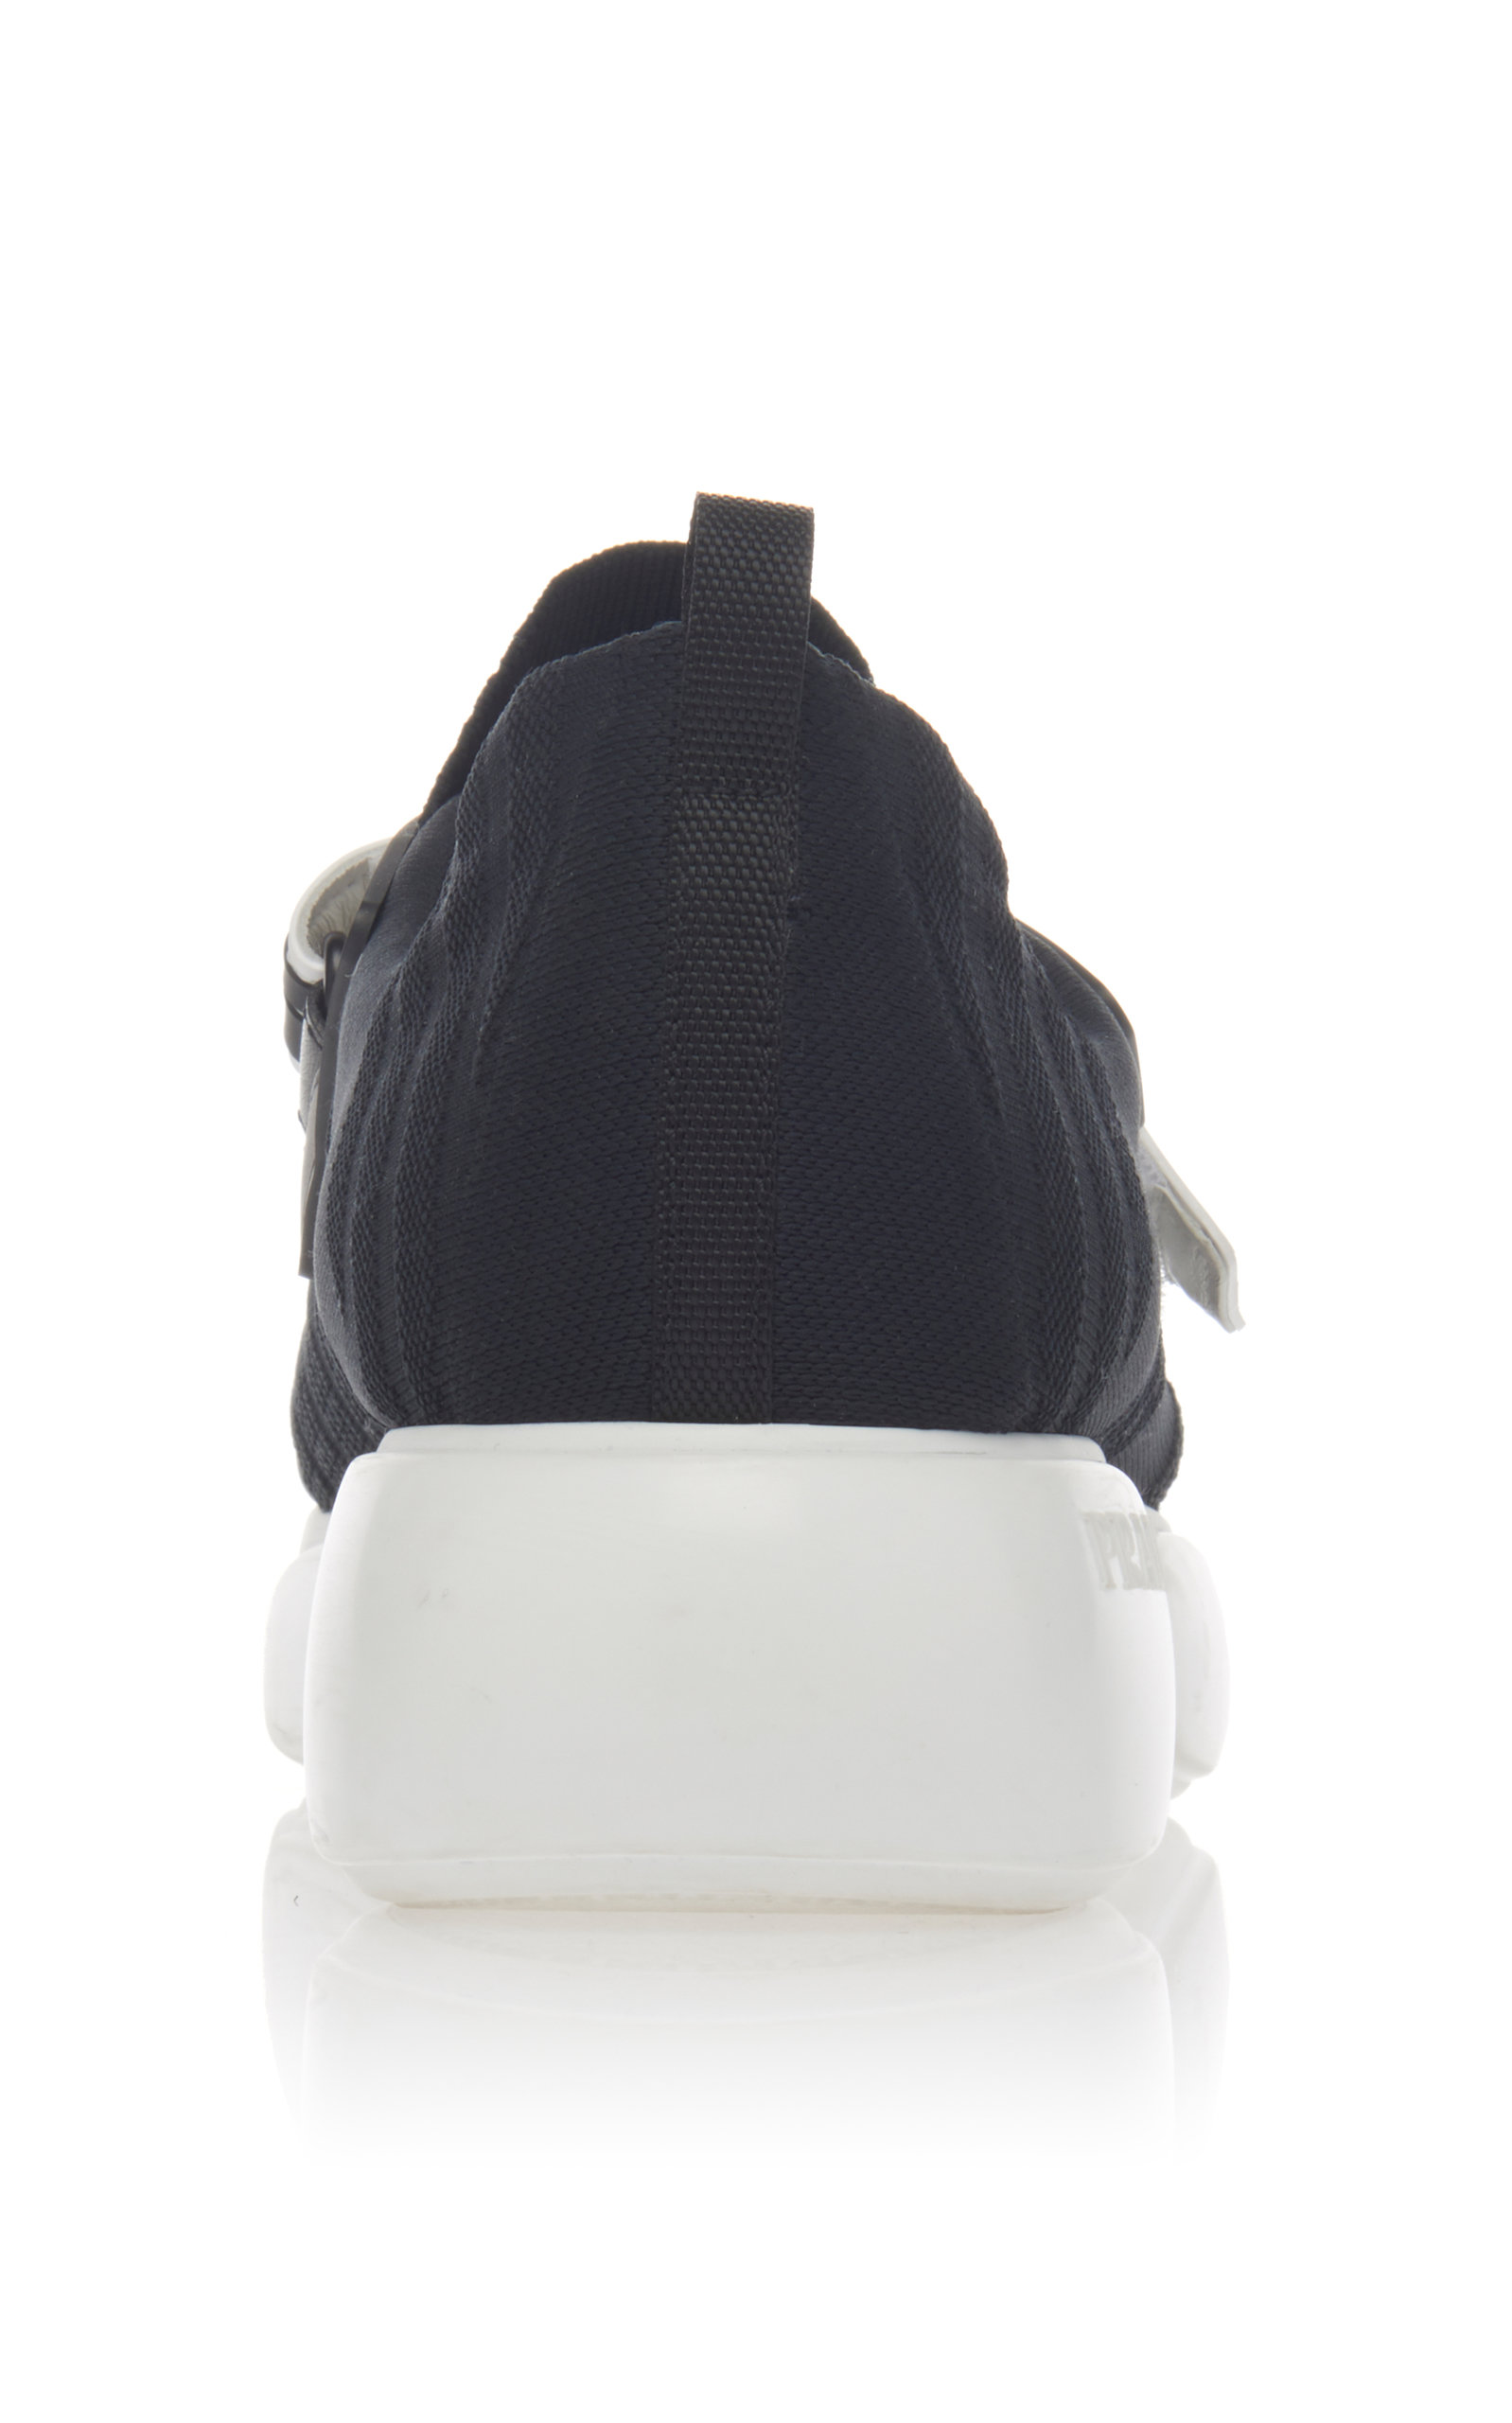 Rubber By Leather Trimmed Mesh Sneakers Cloudbust PradaModa And 0mv8ONwn